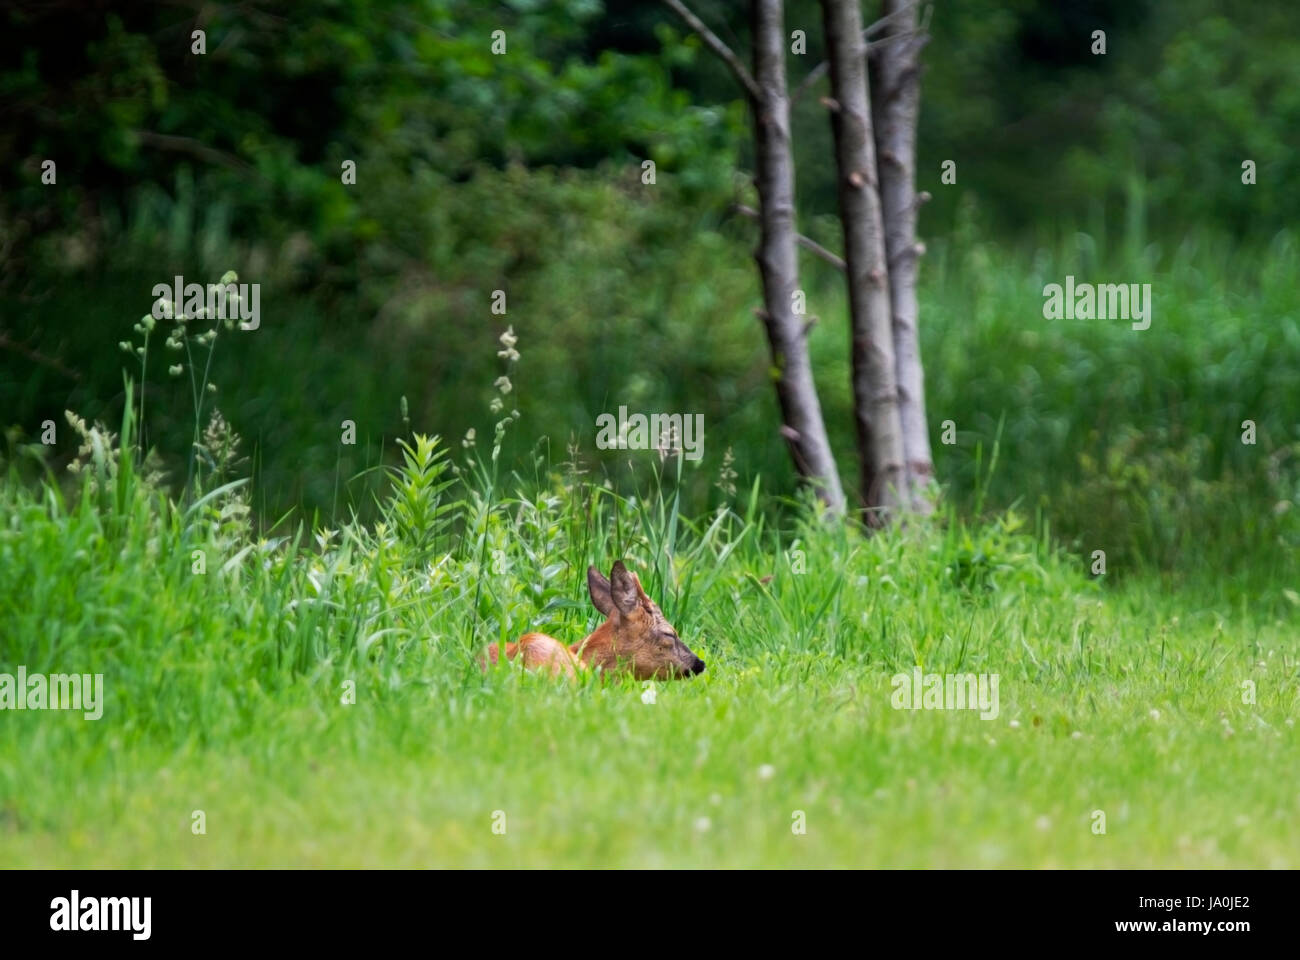 Young Roe deer buck sleeping in grass - Stock Image